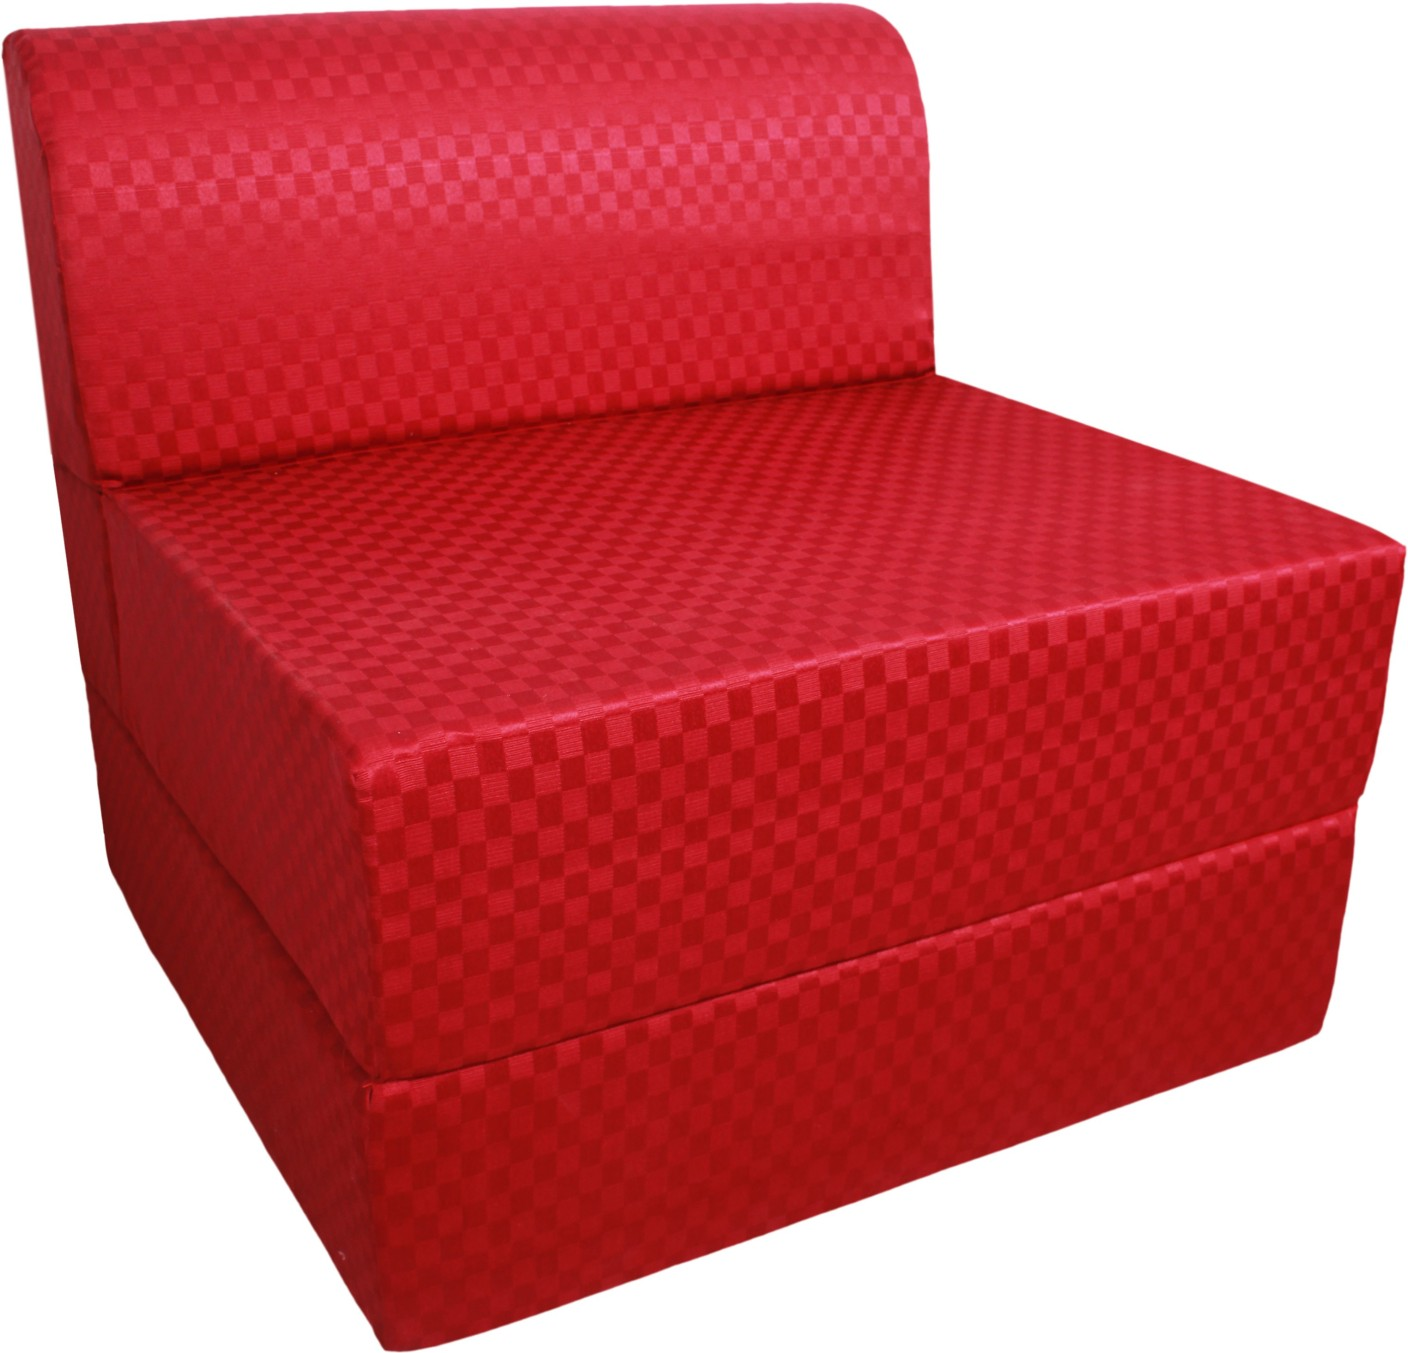 Story home sofa cum bed single foam sofa bed price in for Sofa bed price in india